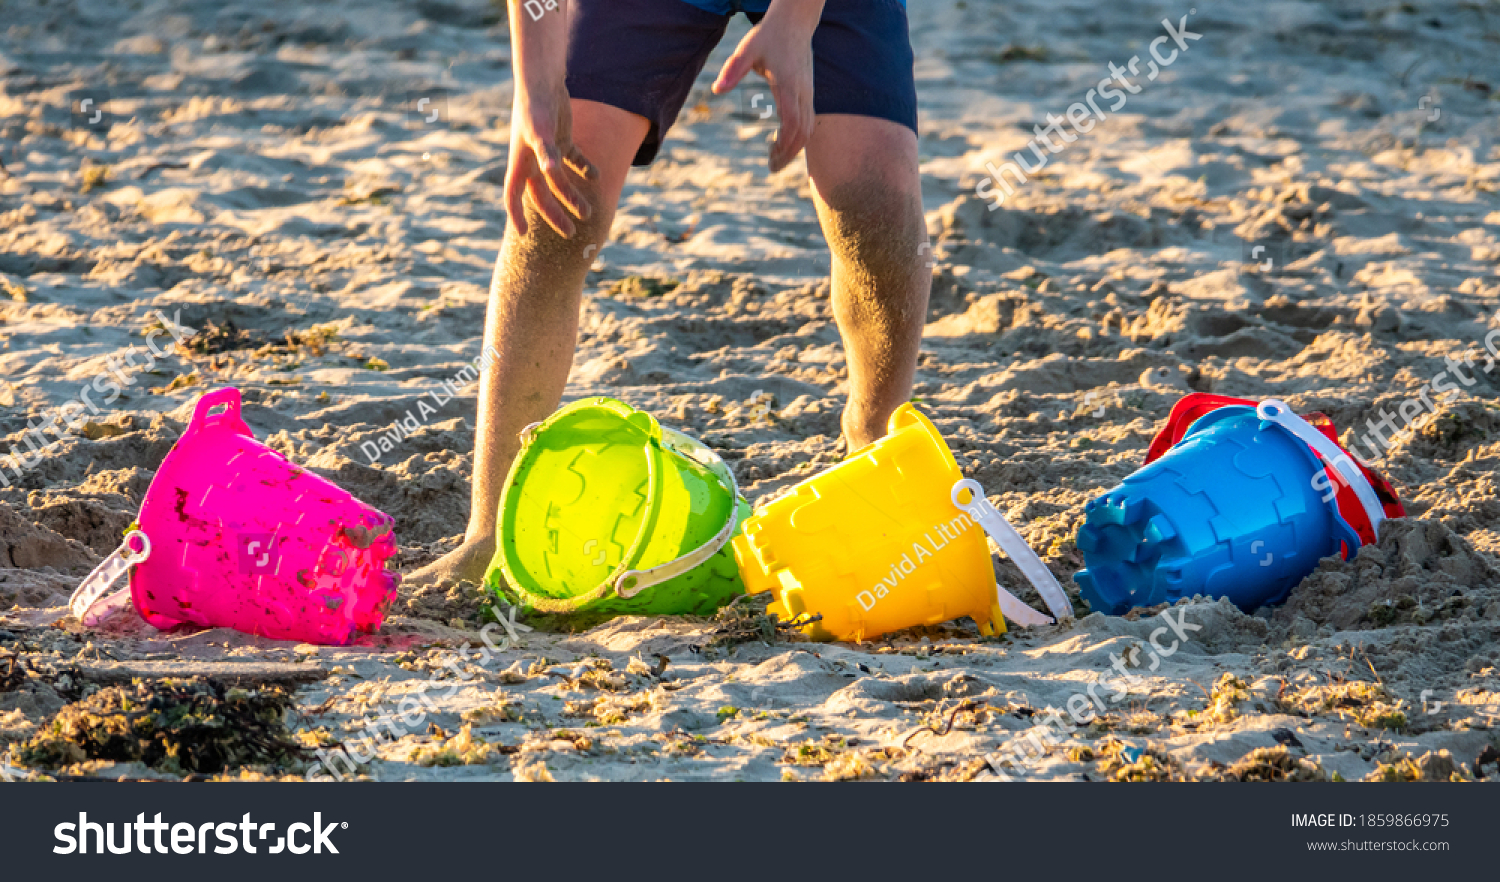 Colorful buckets for playing in the sand at the beach in Monterey, California.